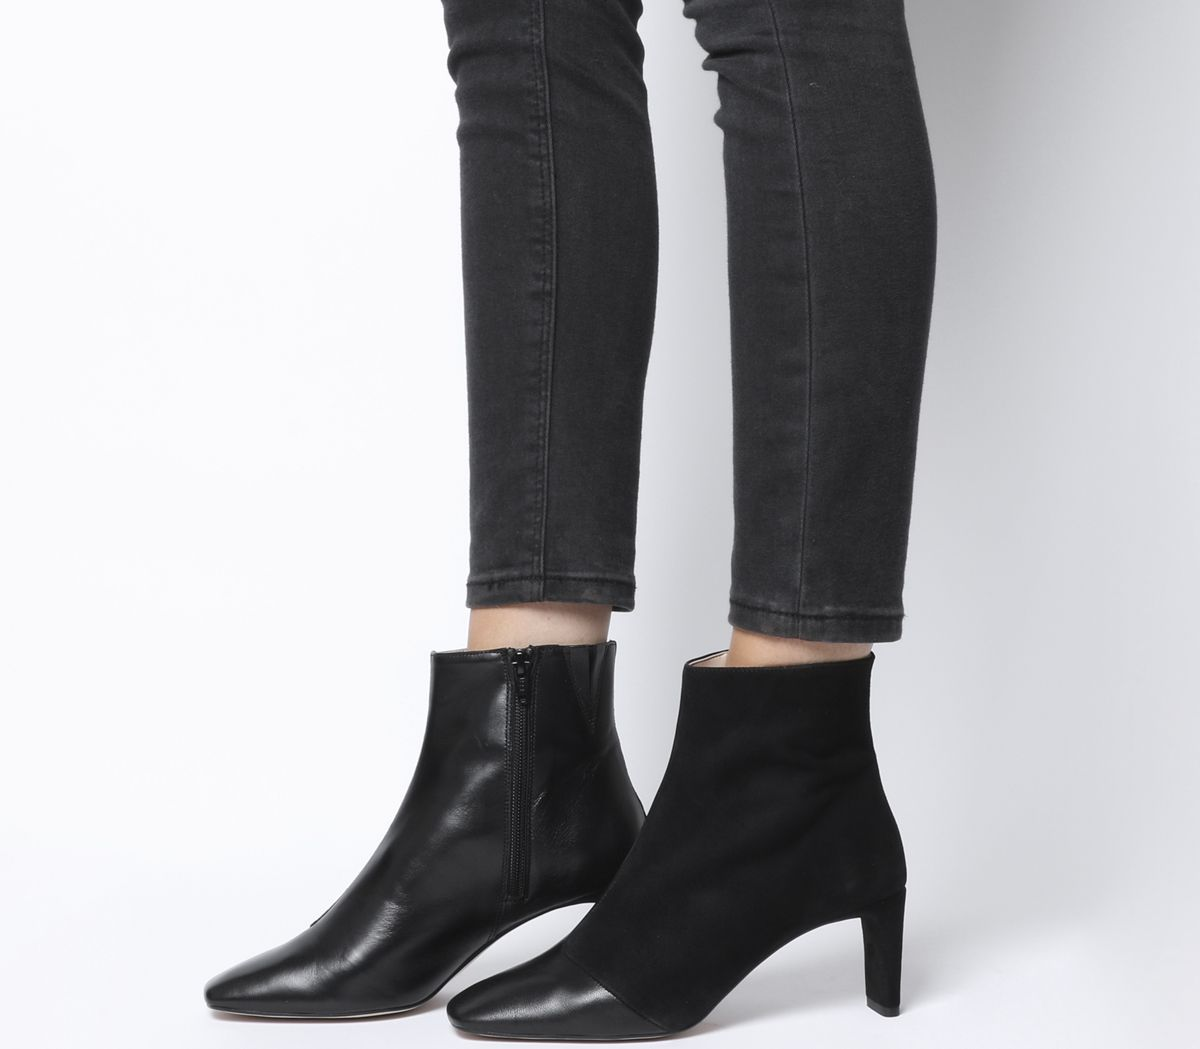 Adverse Square Toe Low Heel Boots Boots Low Heel Boots Black Heel Boots